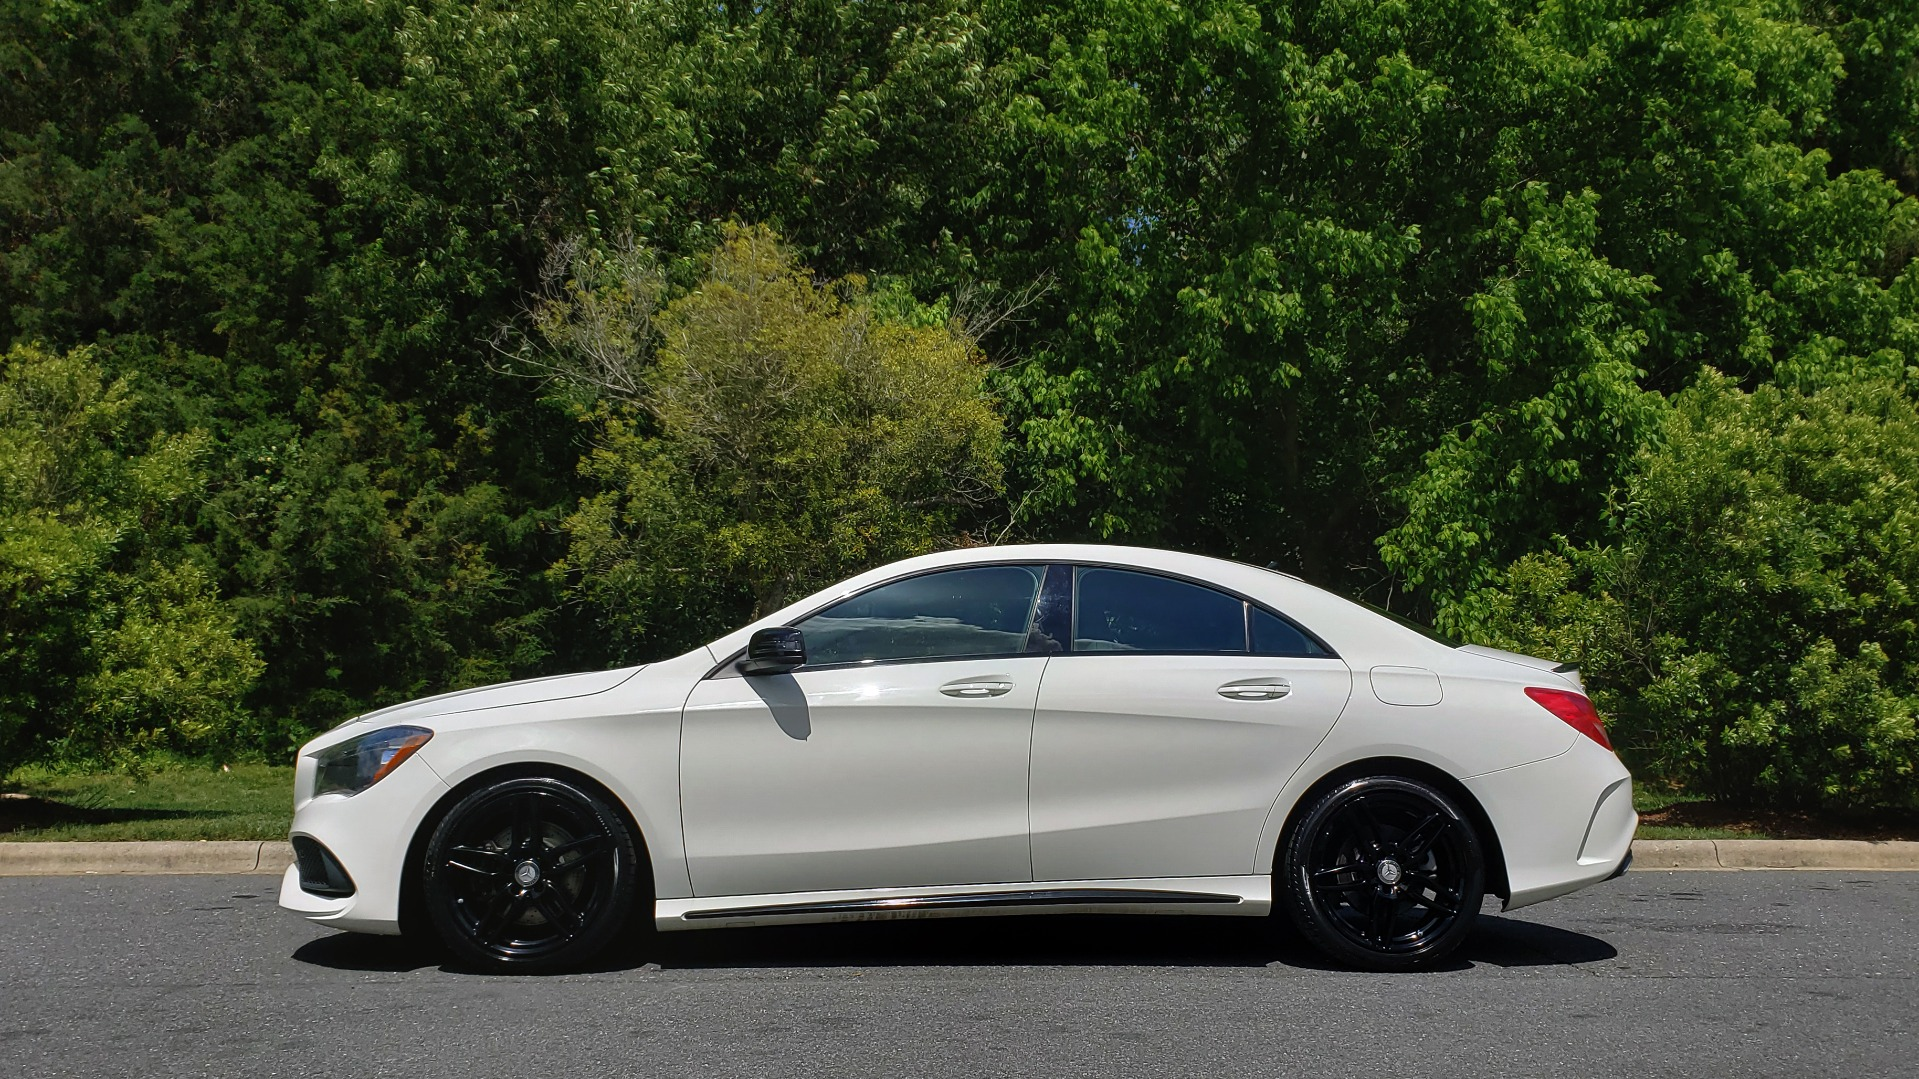 Used 2017 Mercedes-Benz CLA 250 4MATIC / SPORT / PREMIUM / MULTI MEDIA / NIGHT PKG / PANO-ROOF for sale Sold at Formula Imports in Charlotte NC 28227 2